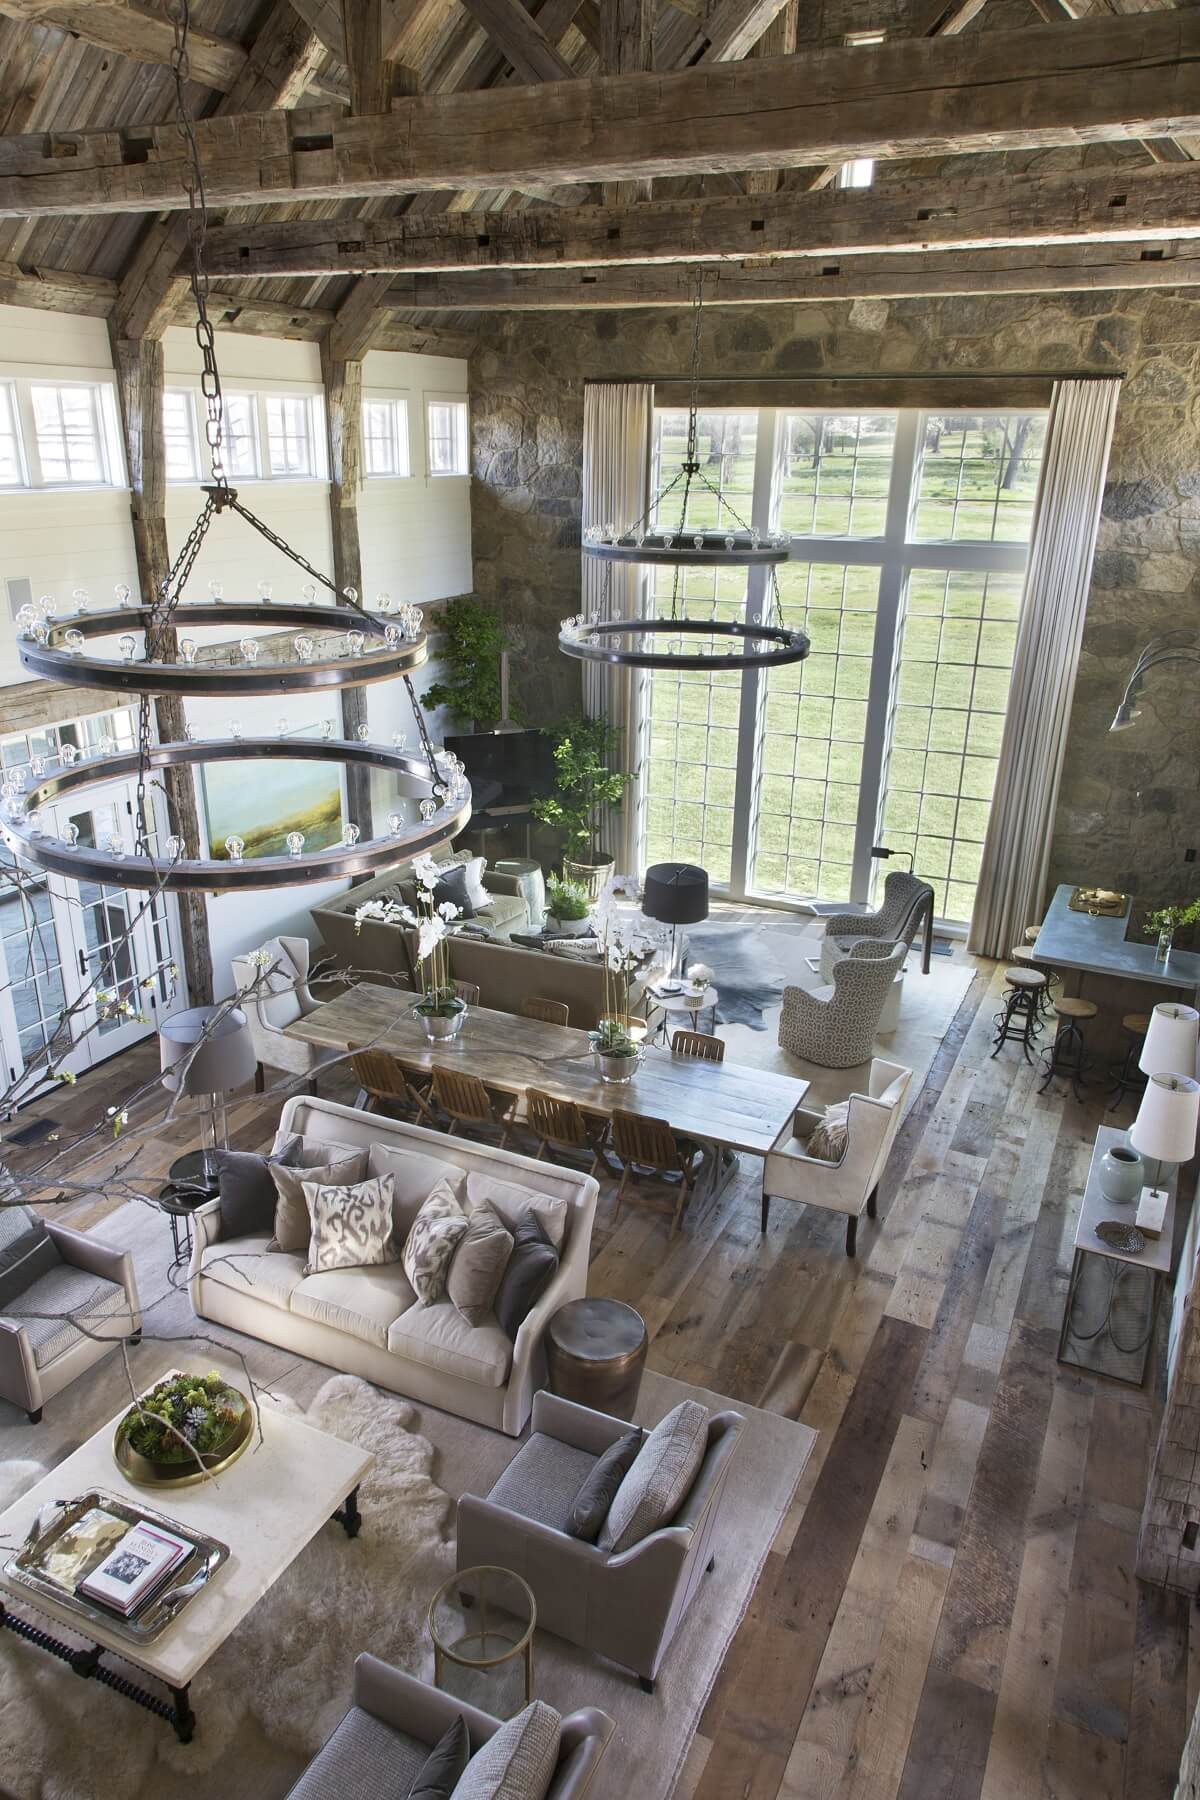 From above, it is interesting to see the flowing layout of this open floor plan.